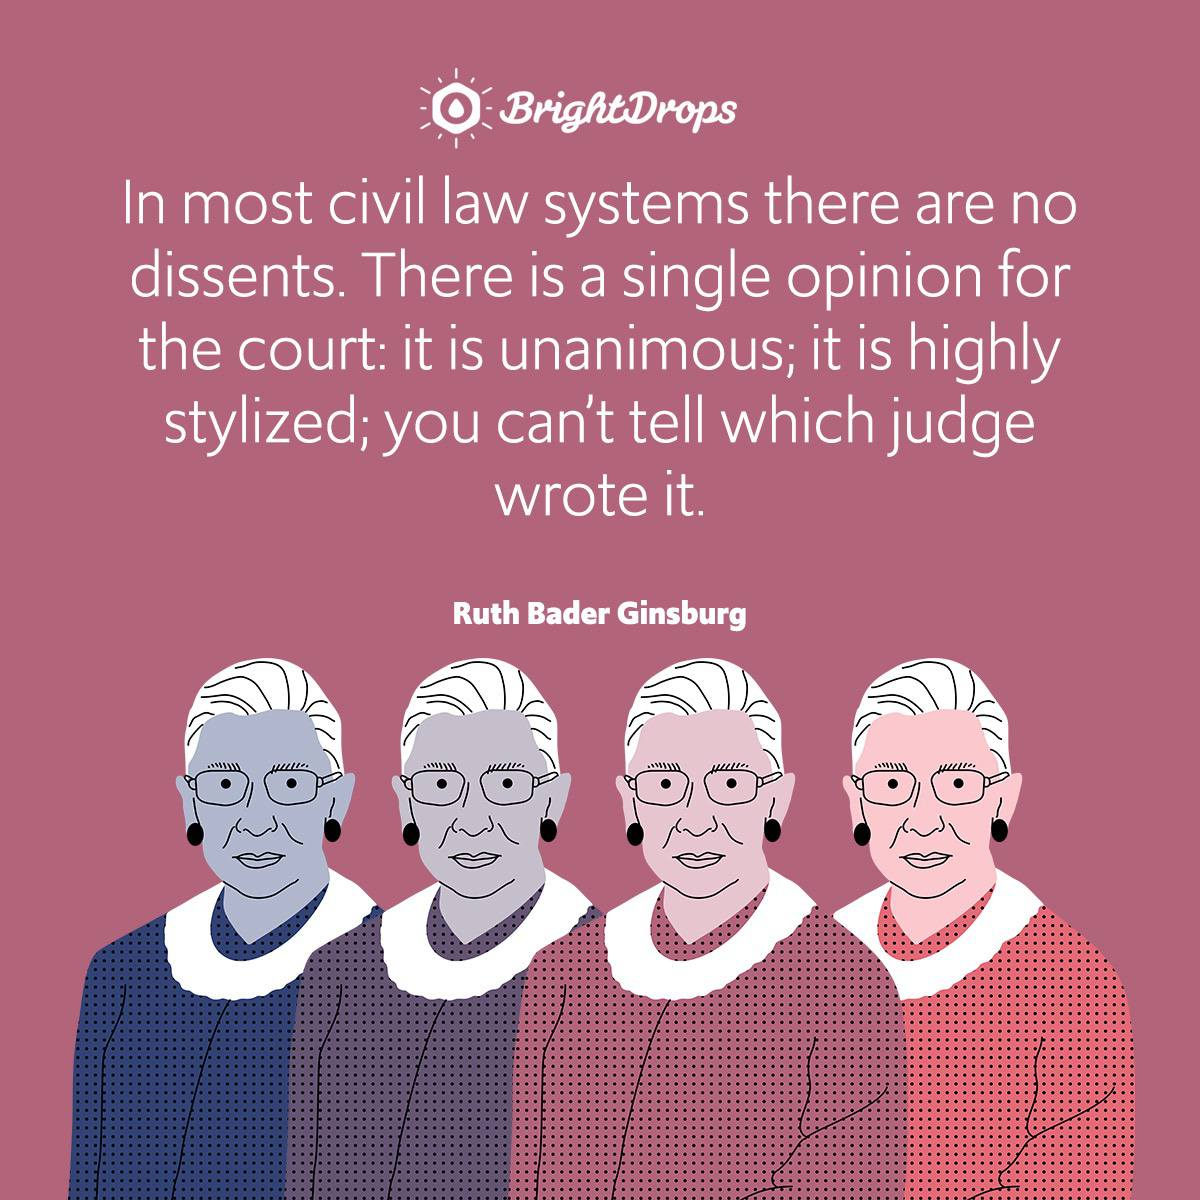 In most civil law systems there are no dissents. There is a single opinion for the court: it is unanimous; it is highly stylized; you can't tell which judge wrote it.